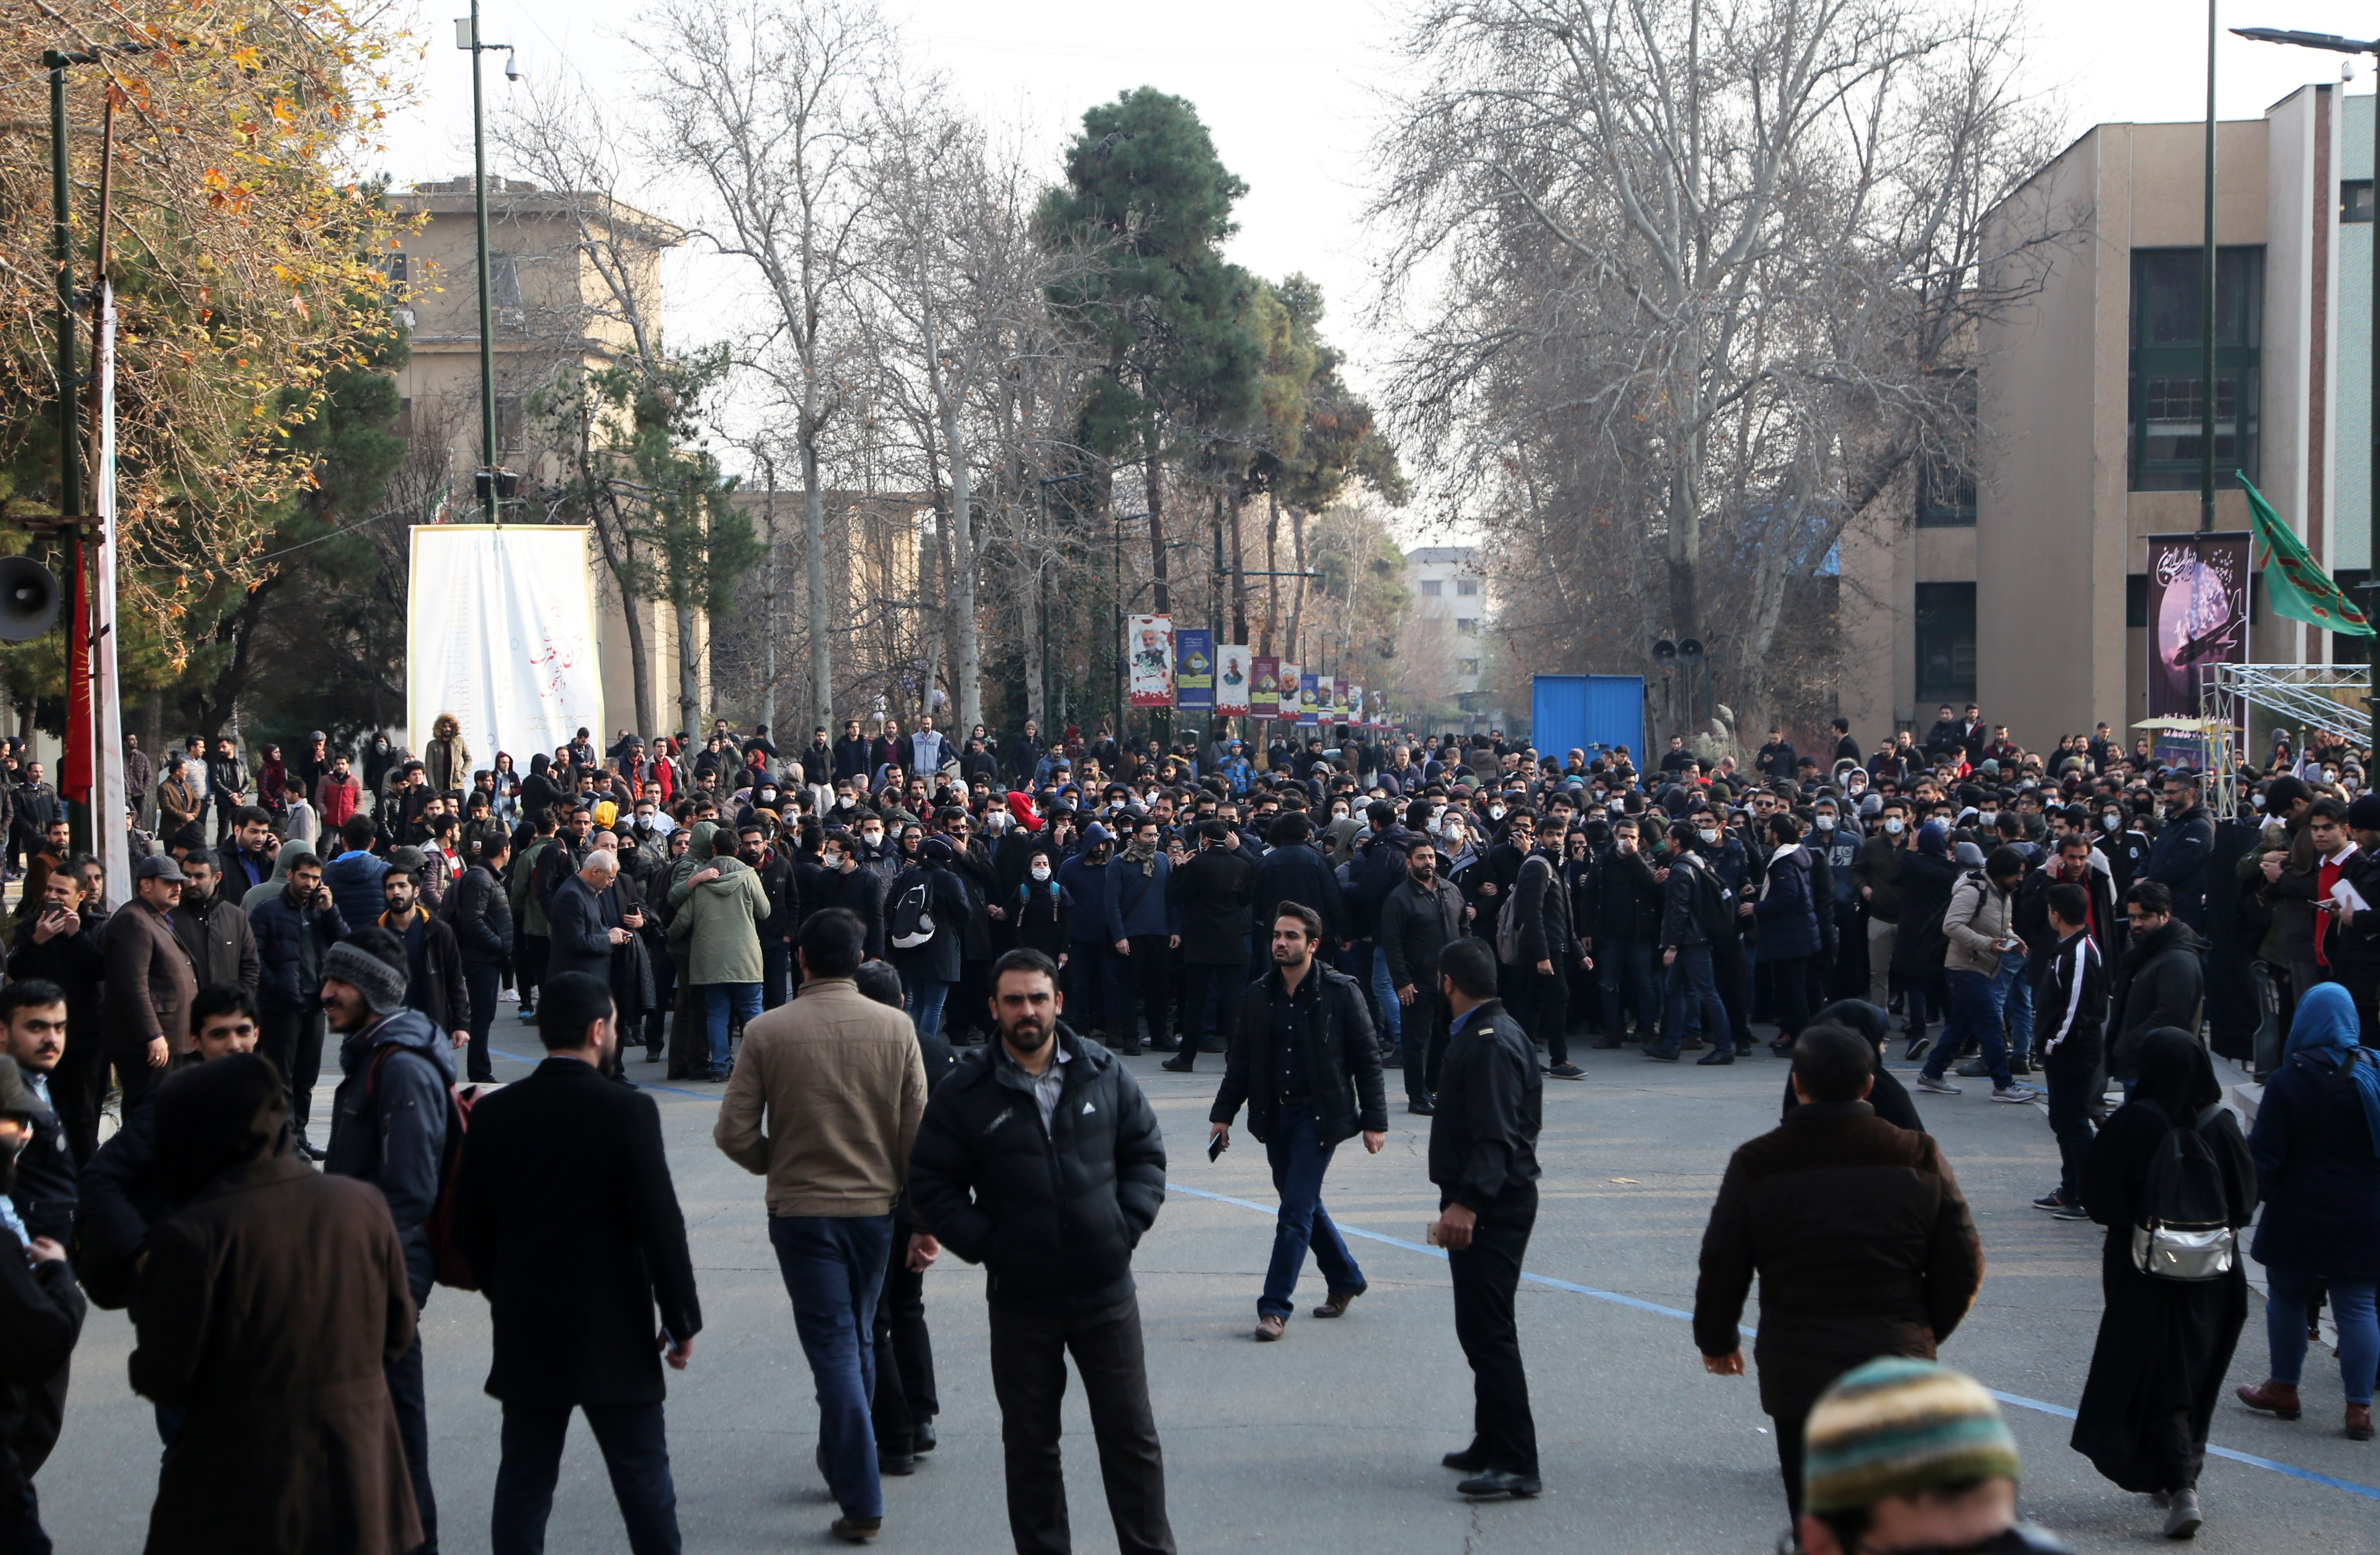 How thousands of Iranians went from mourning a general to protesting the regime, in a week